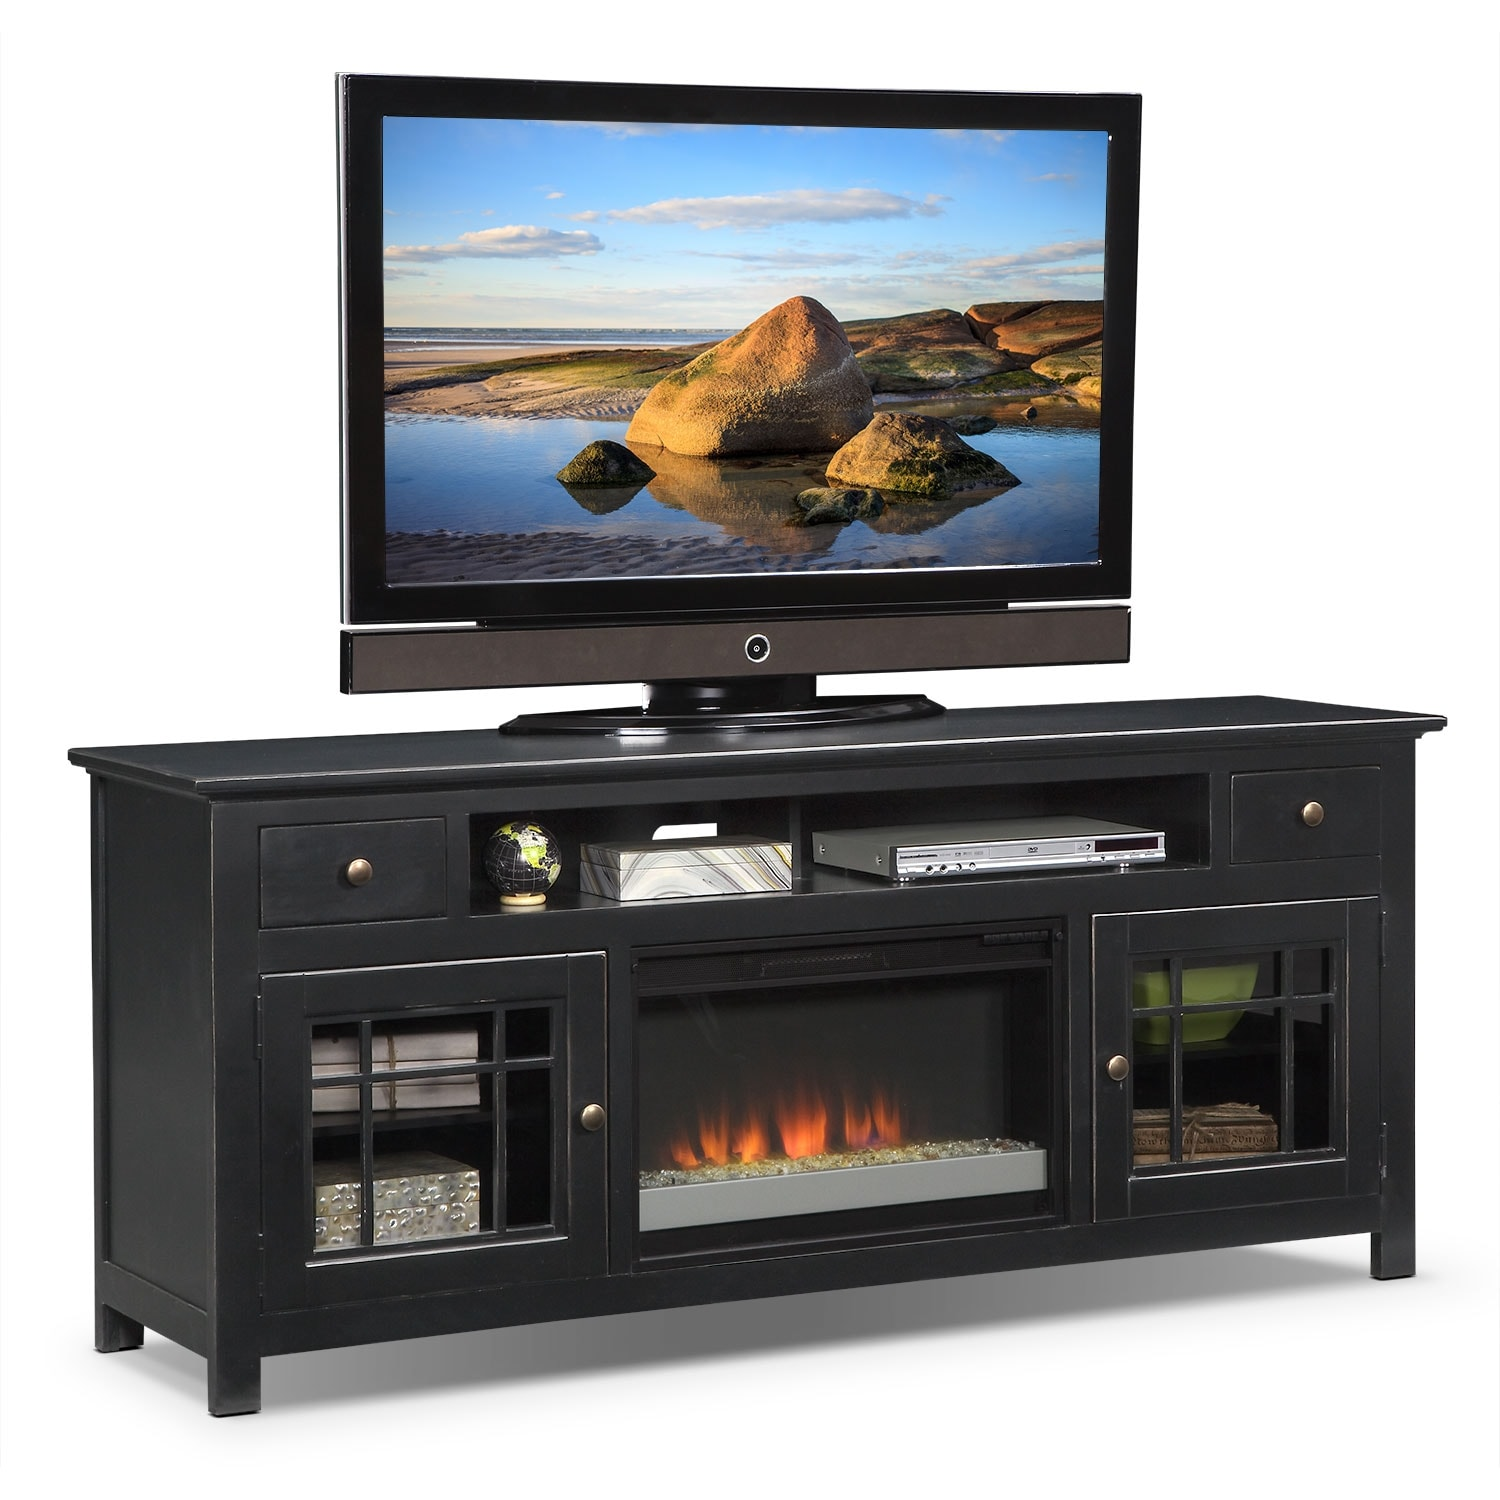 "Merrick Black 74"" Fireplace TV Stand with Contemporary Insert"